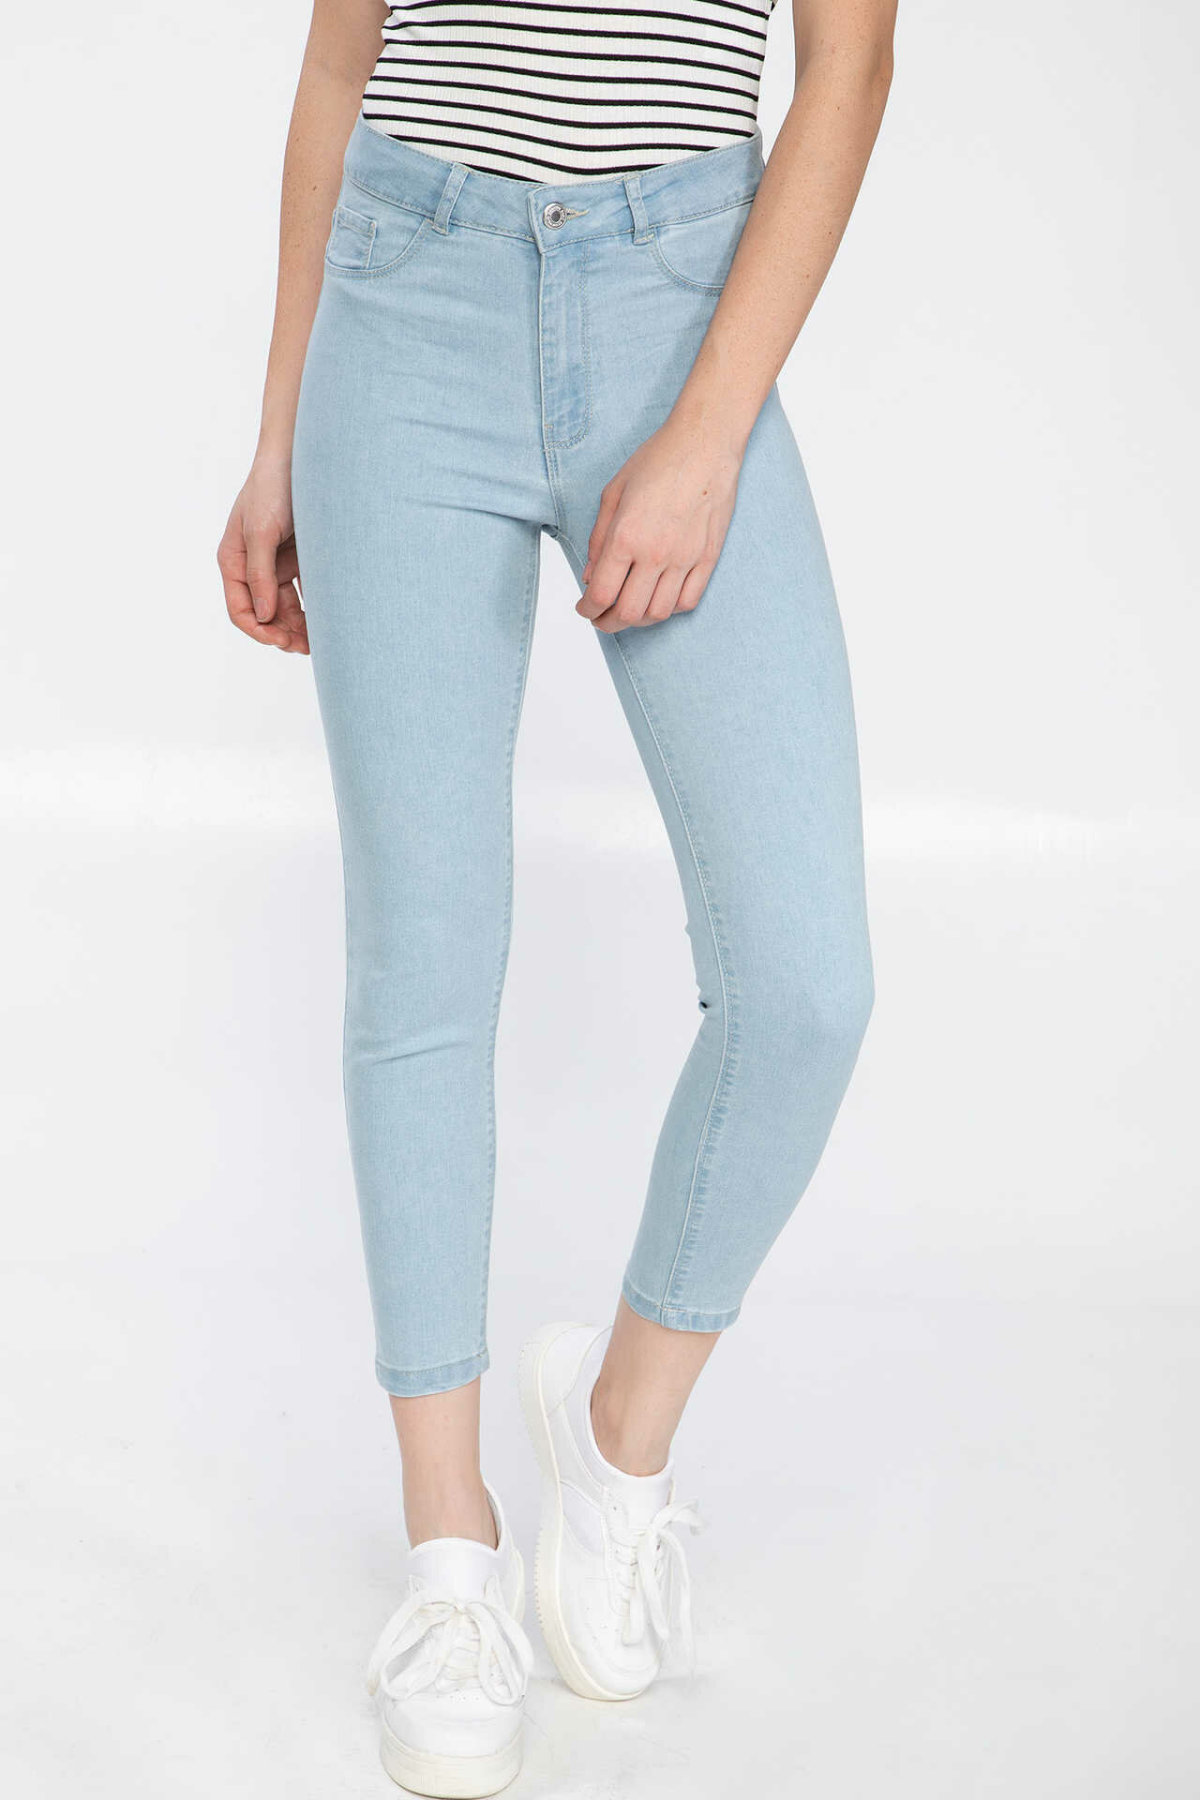 DeFacto Dark Blue Women Casual Denim Jeans Ankle-length Pencil Pants Fit Skinny Trousers J9127AZ19SPNM63-J9127AZ19SP